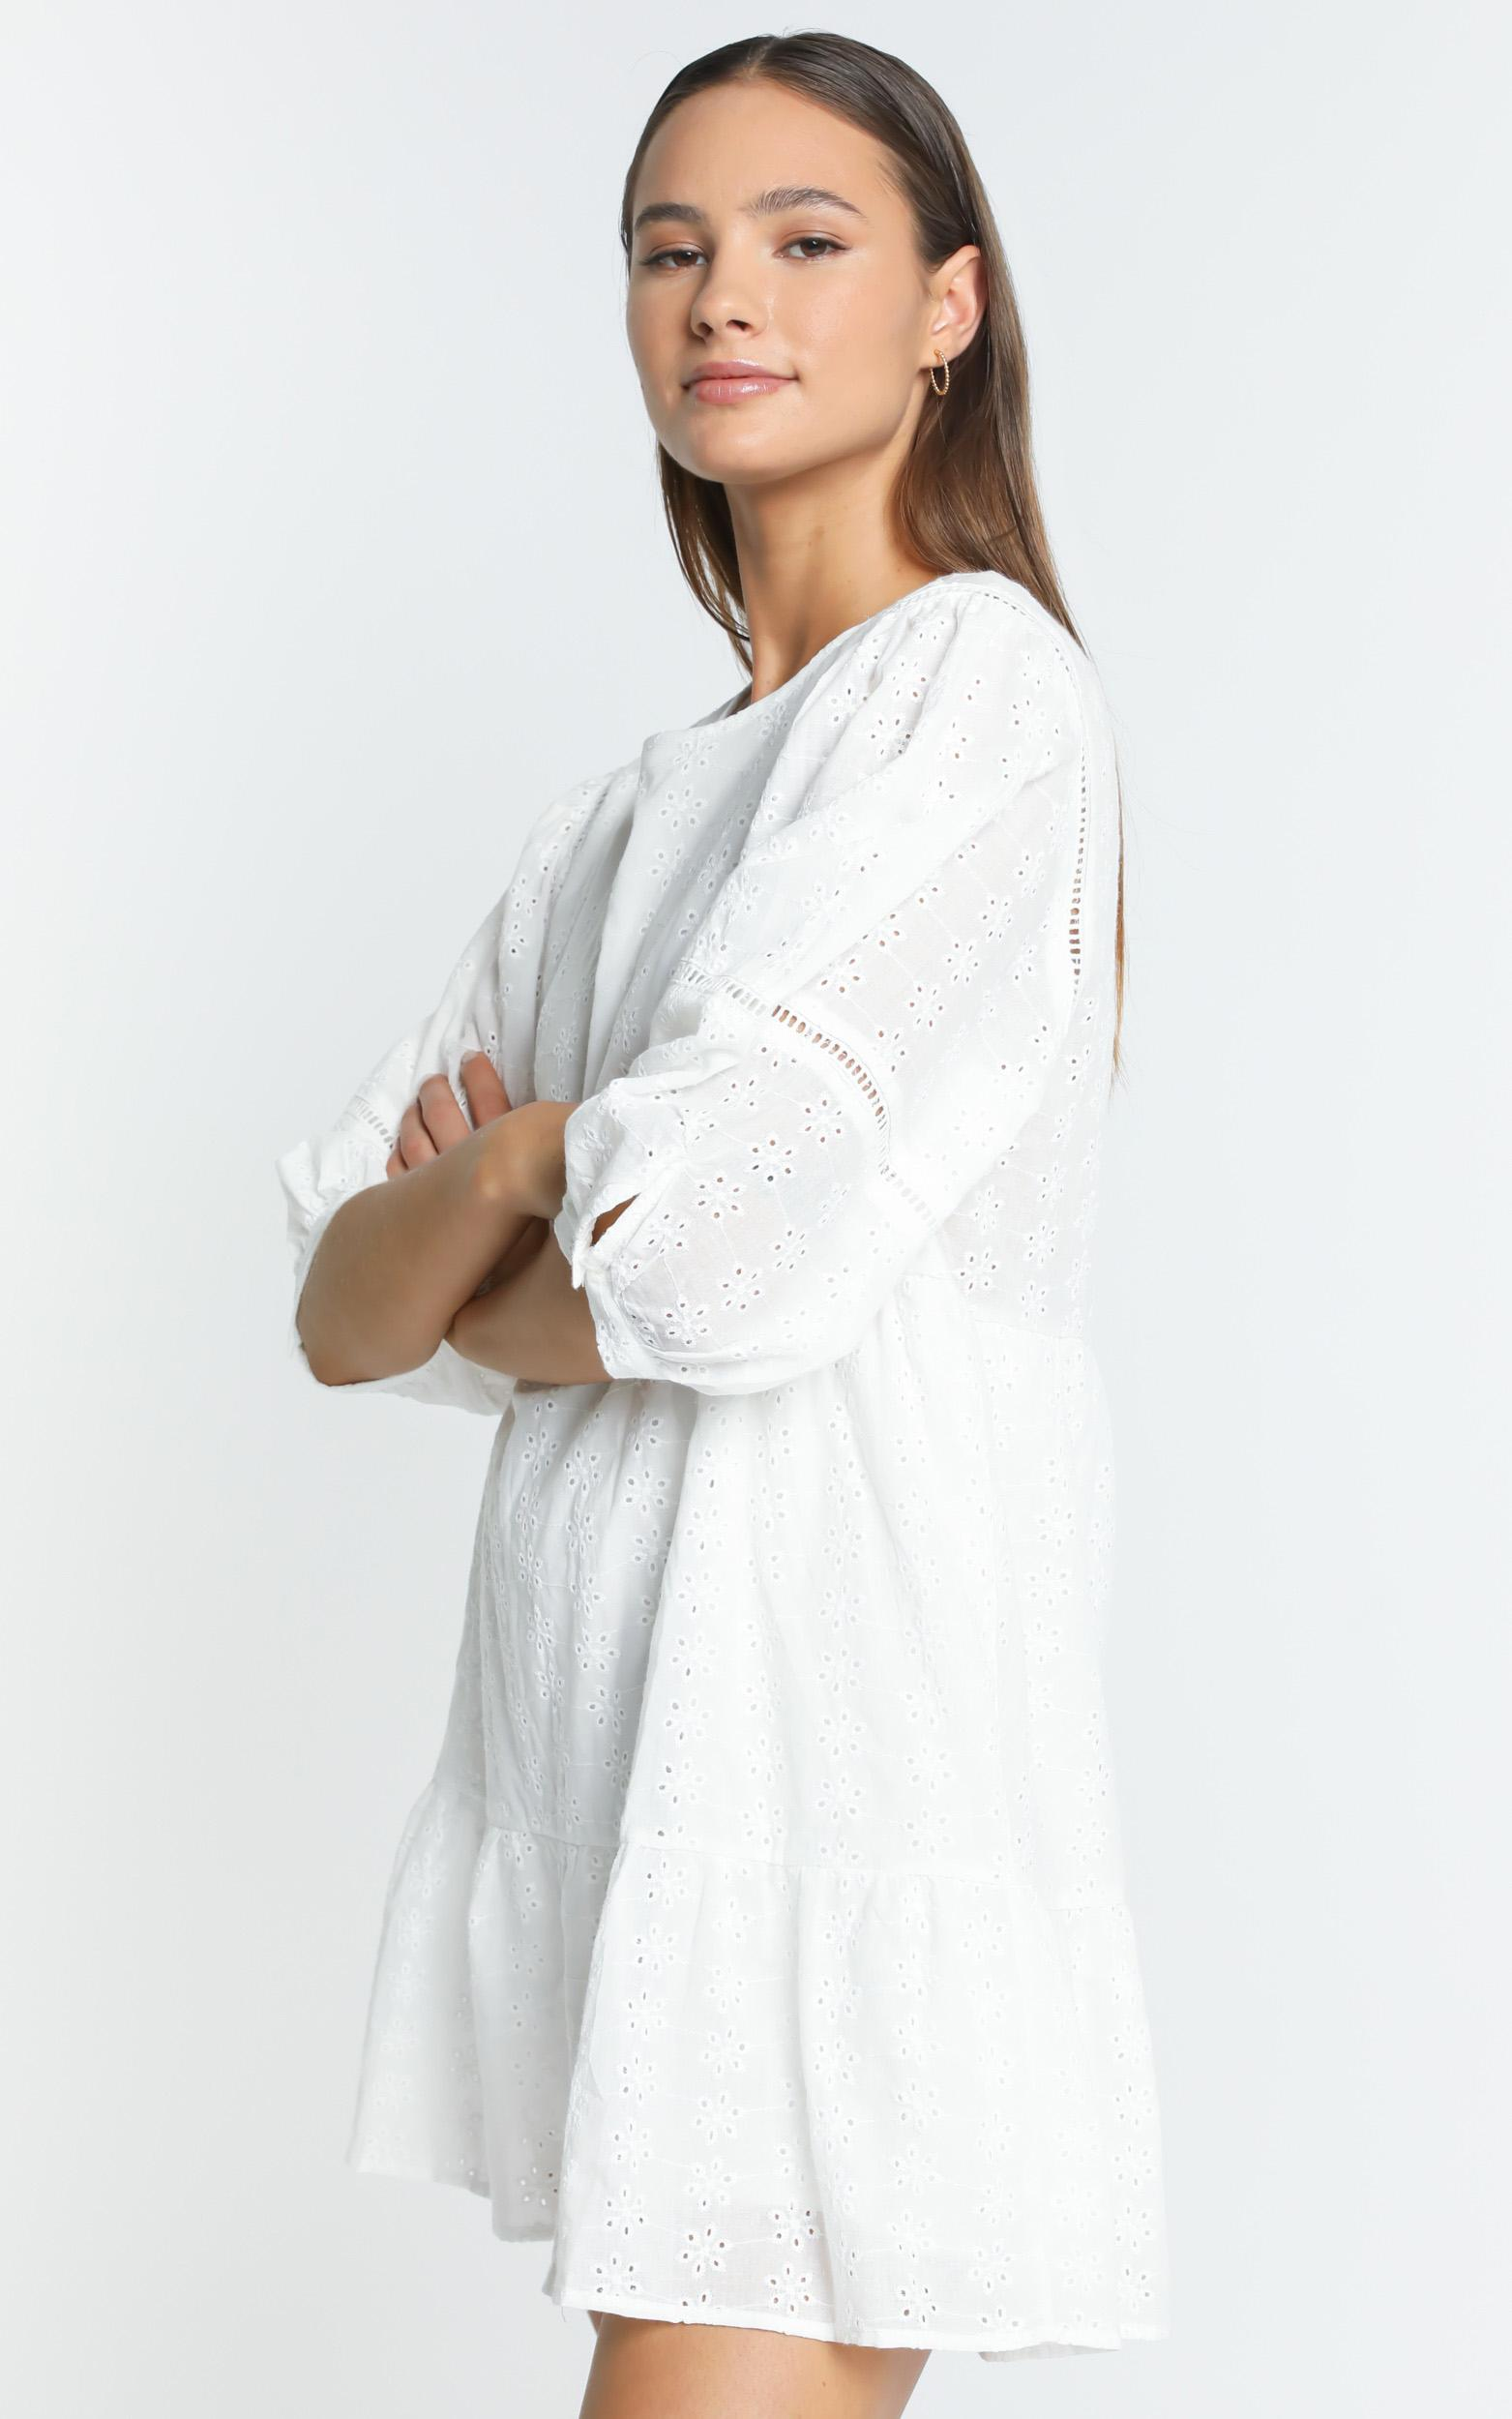 Lore Dress in White - 6 (XS), White, hi-res image number null